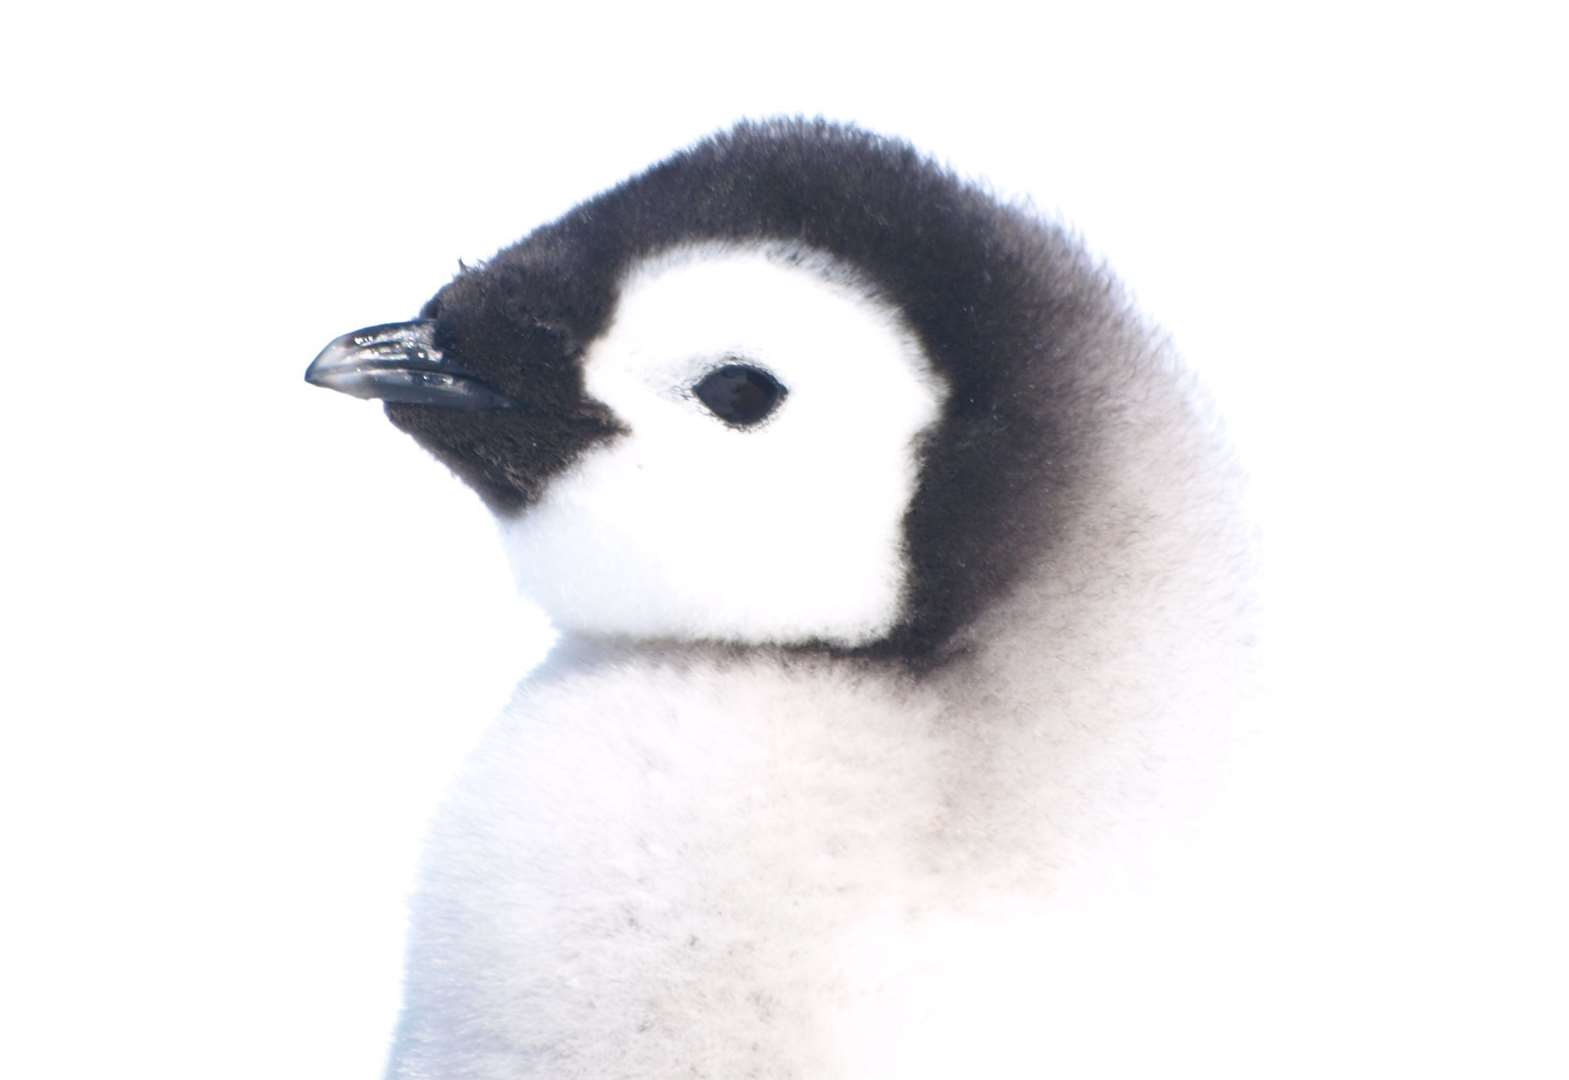 Penguins from space: British Antarctic Survey uses satellite images to uncover new colonies - Cambridge Independent